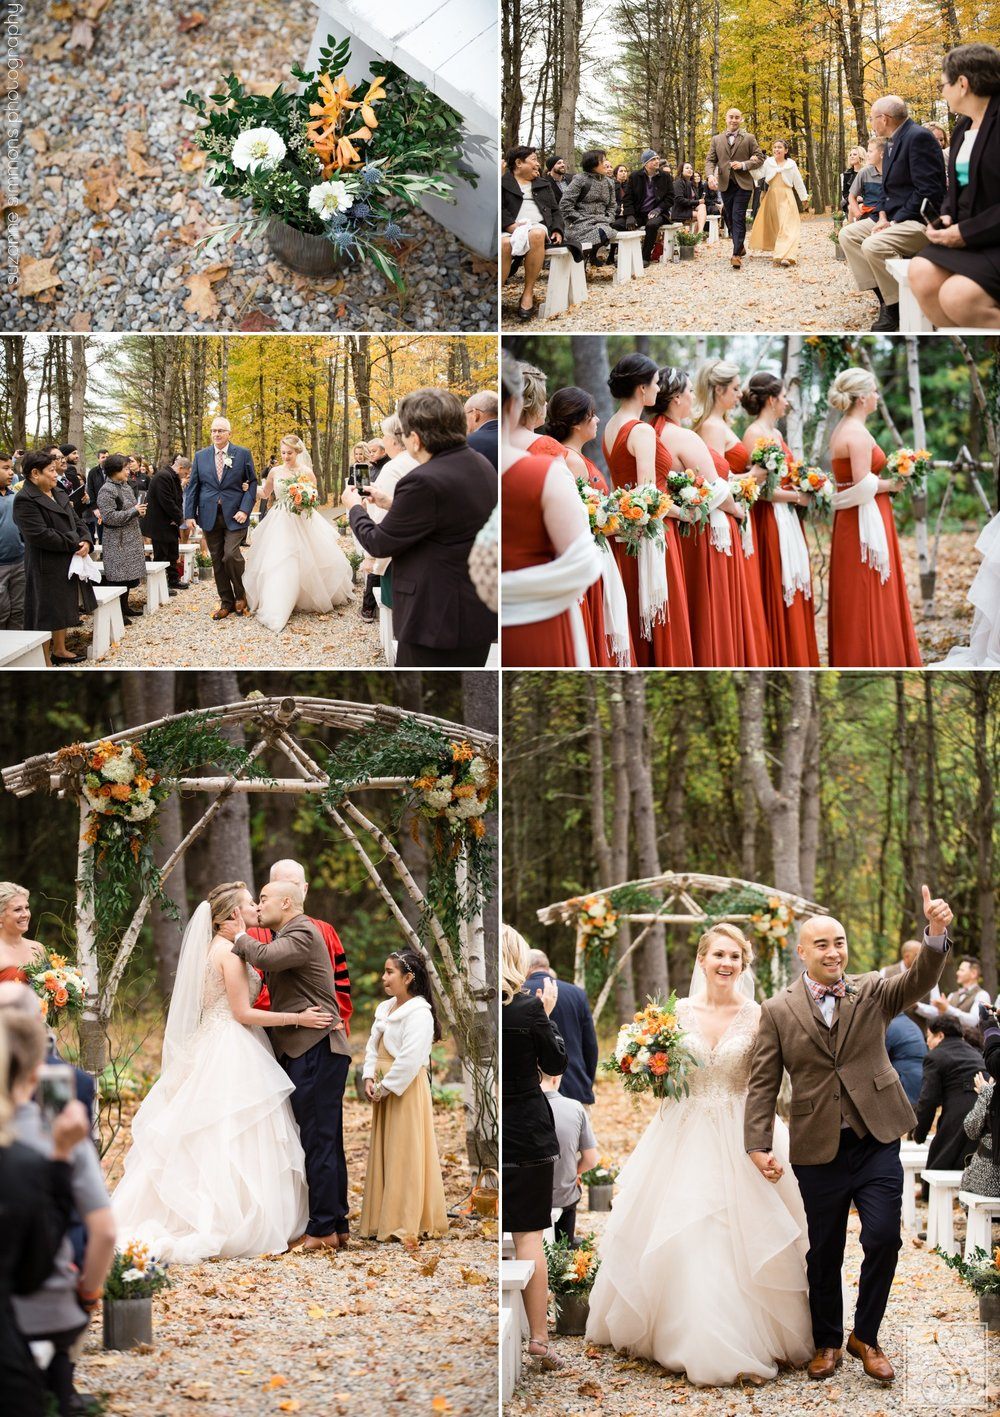 Woodland ceremony at The Barn at Flanagan Farm in Buxton, Maine